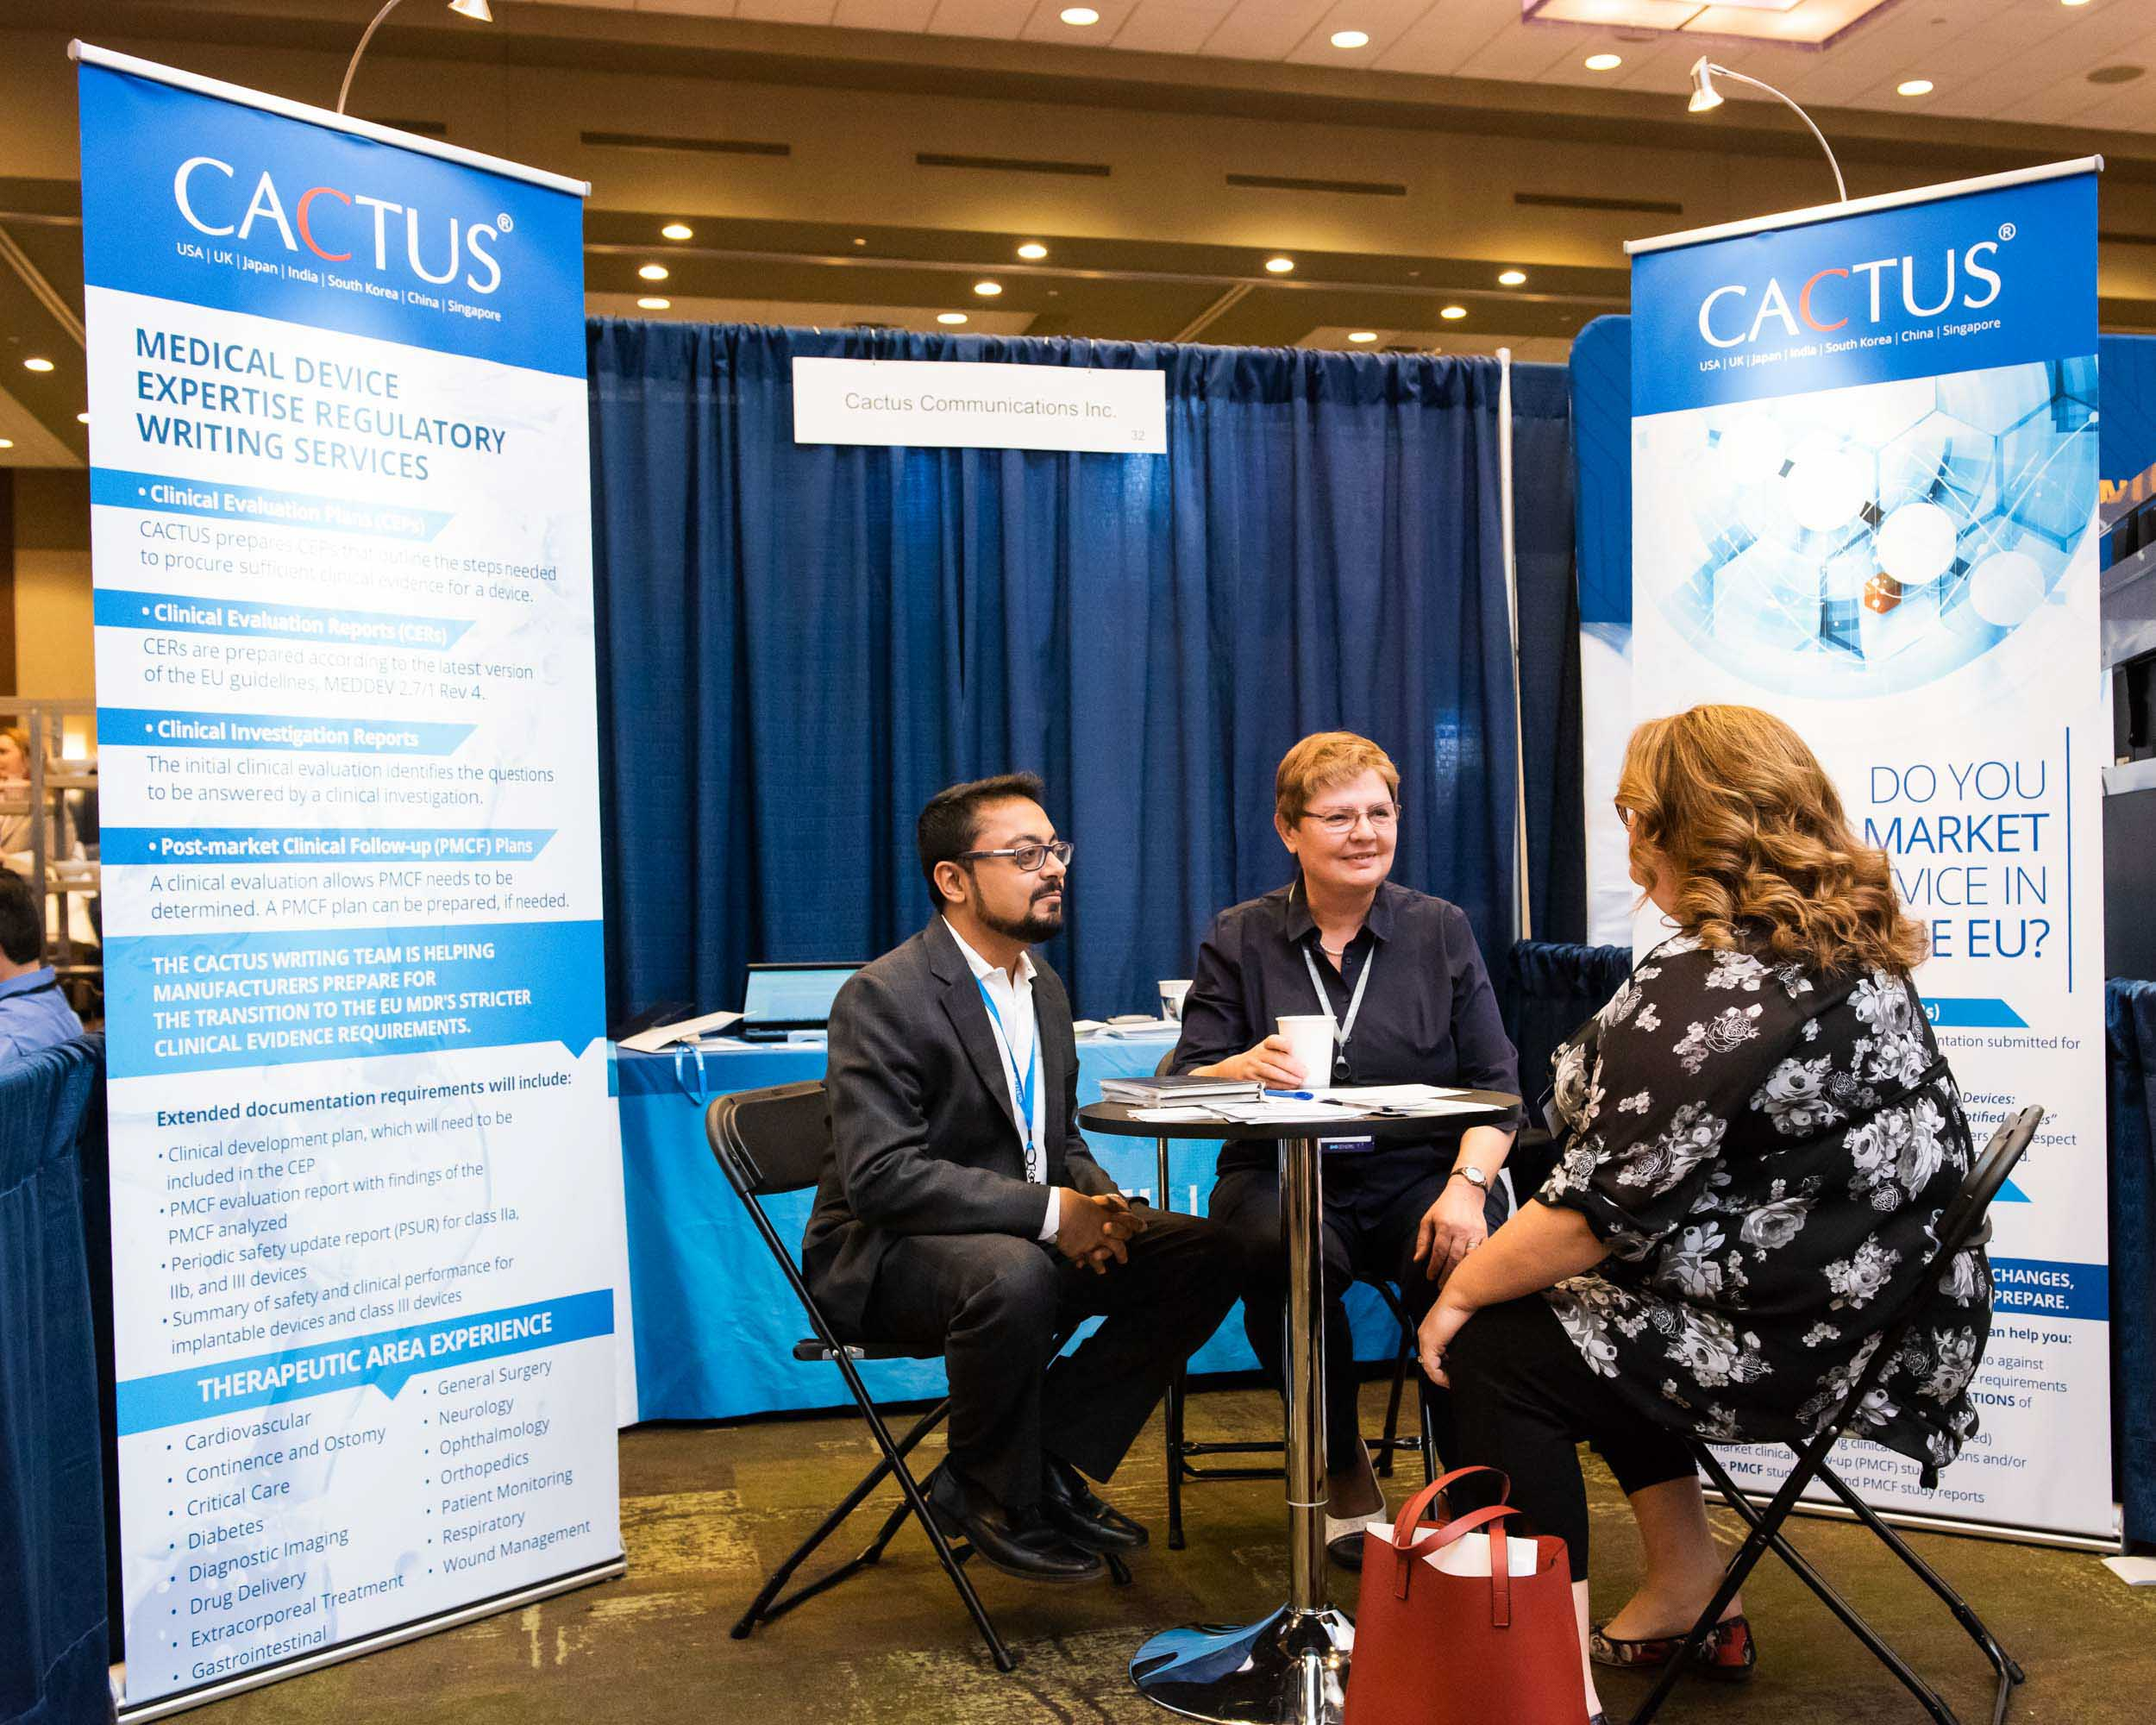 181024 - American Medical Device Summit - mark campbell photography-98_Resized_Resized.jpg